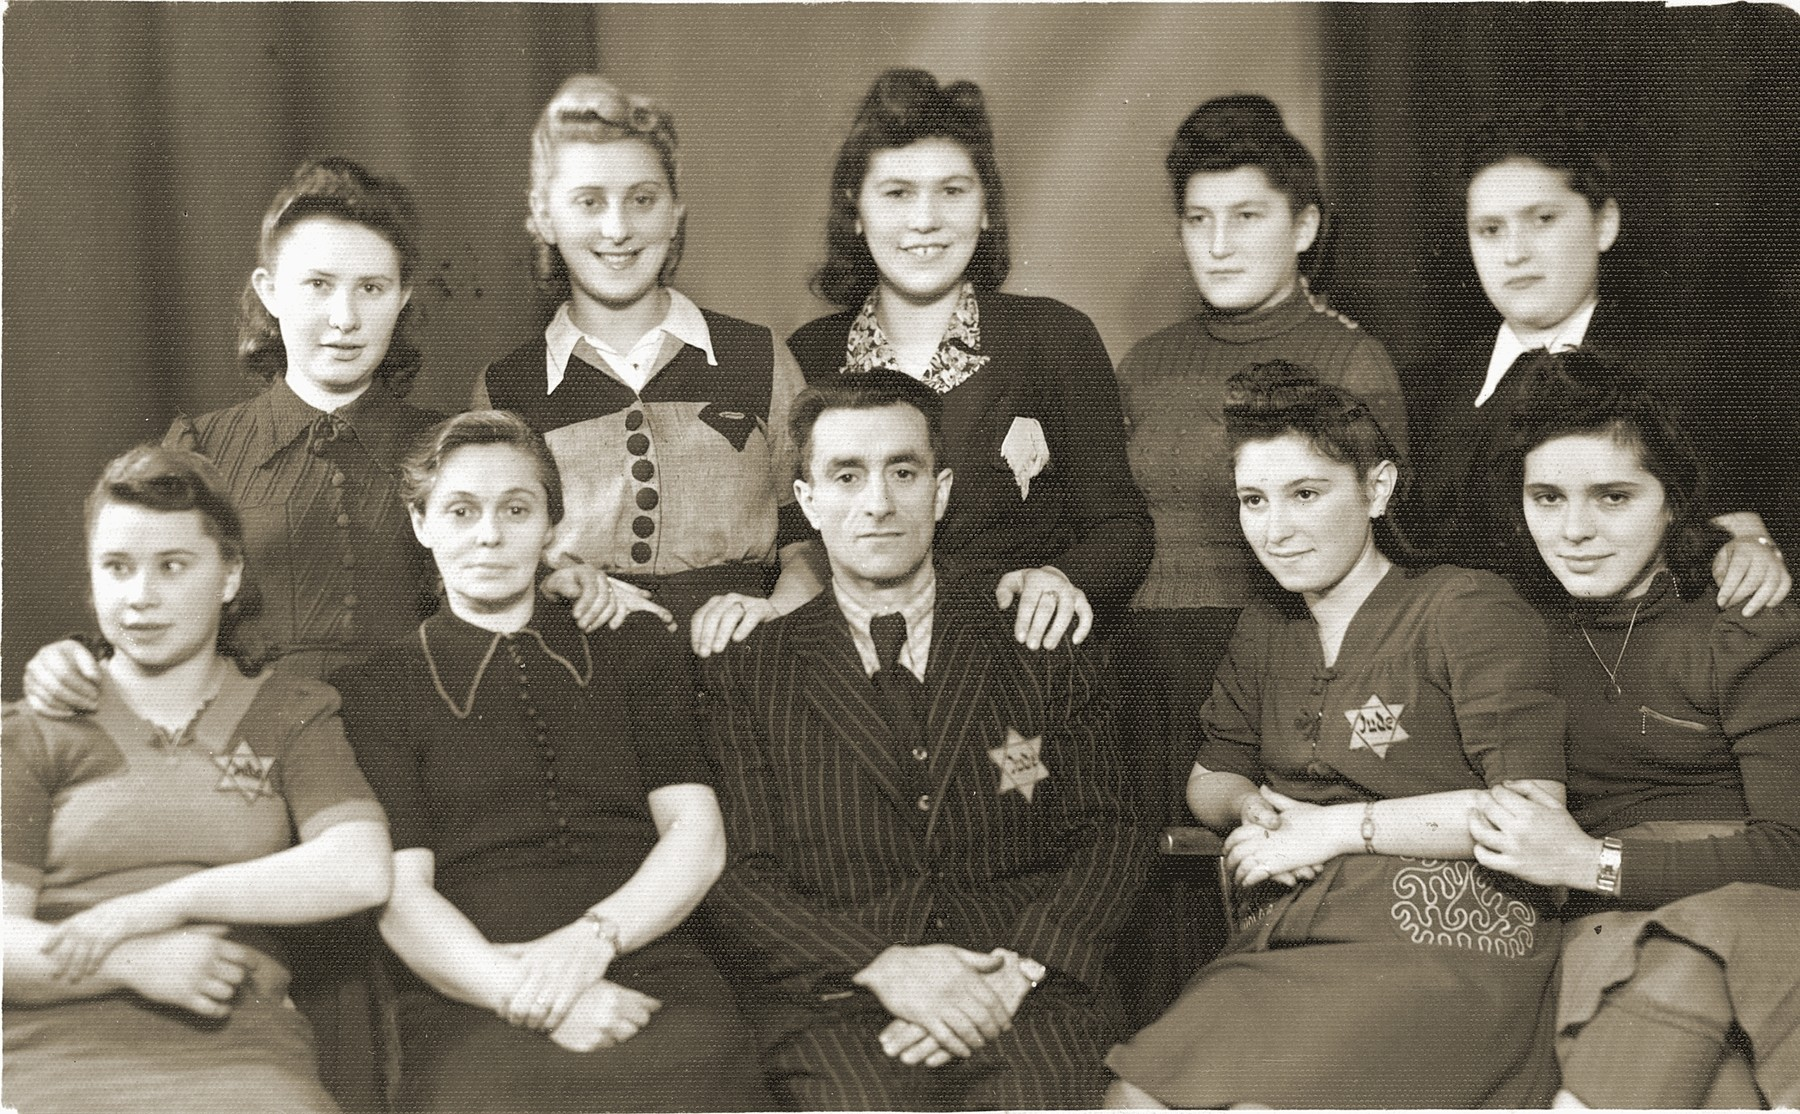 Members of the Rotmensch group of the Rossner factory in the Bedzin ghetto.  Among those pictured are Mania Cawadel and Romensch (botton row, center)